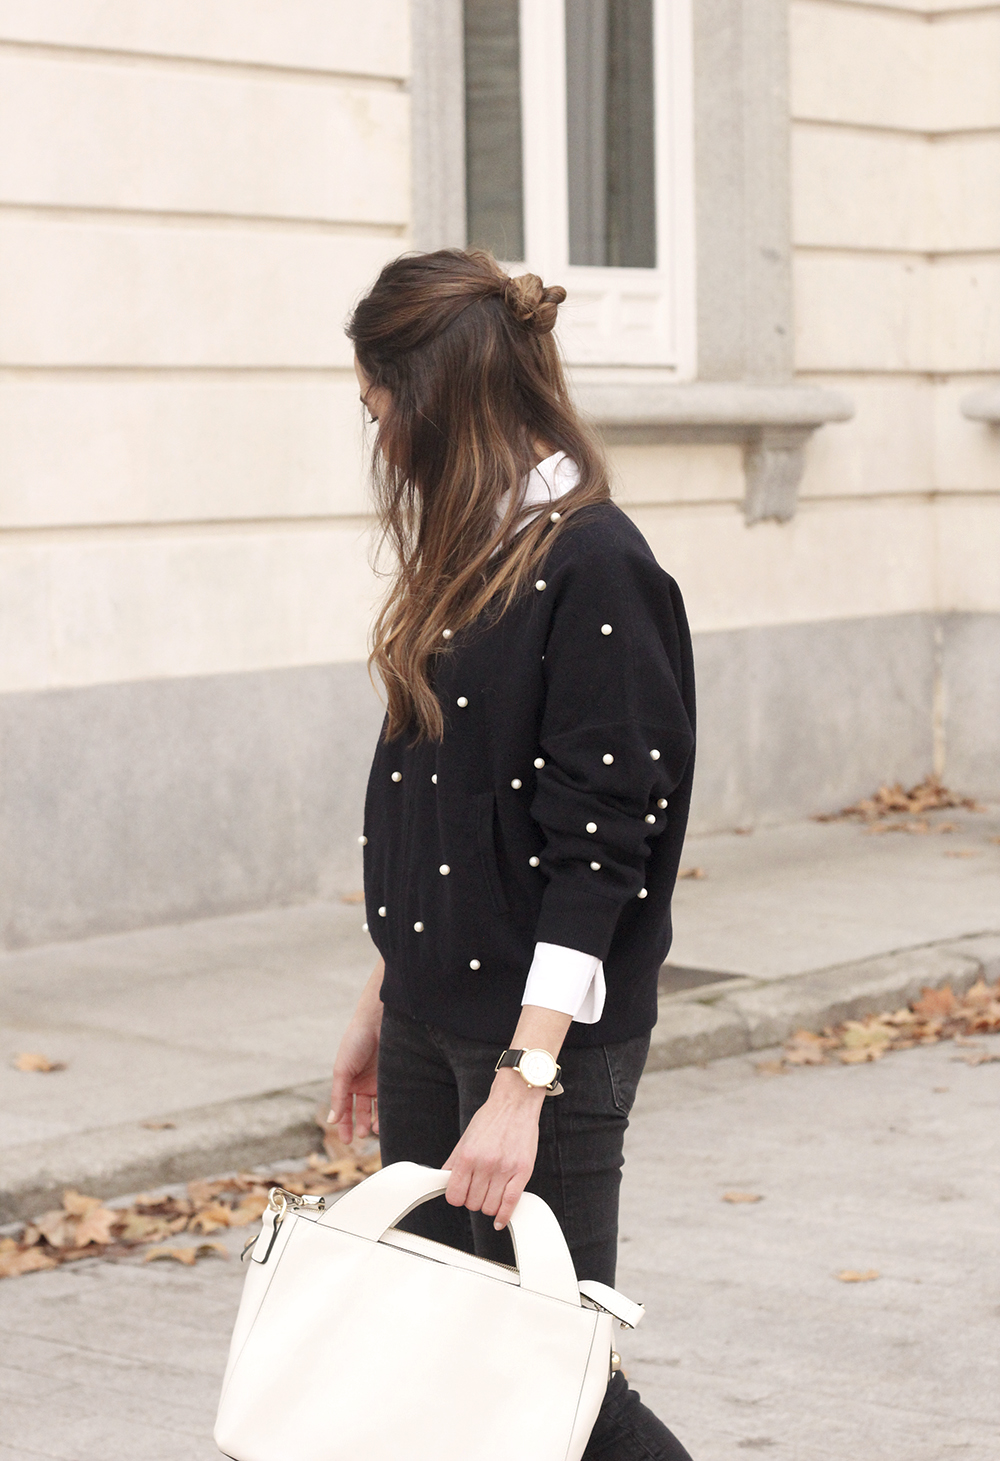 pearl bomber uterqüe black jeans white bag winter outfit 2018 style fashionbomber10